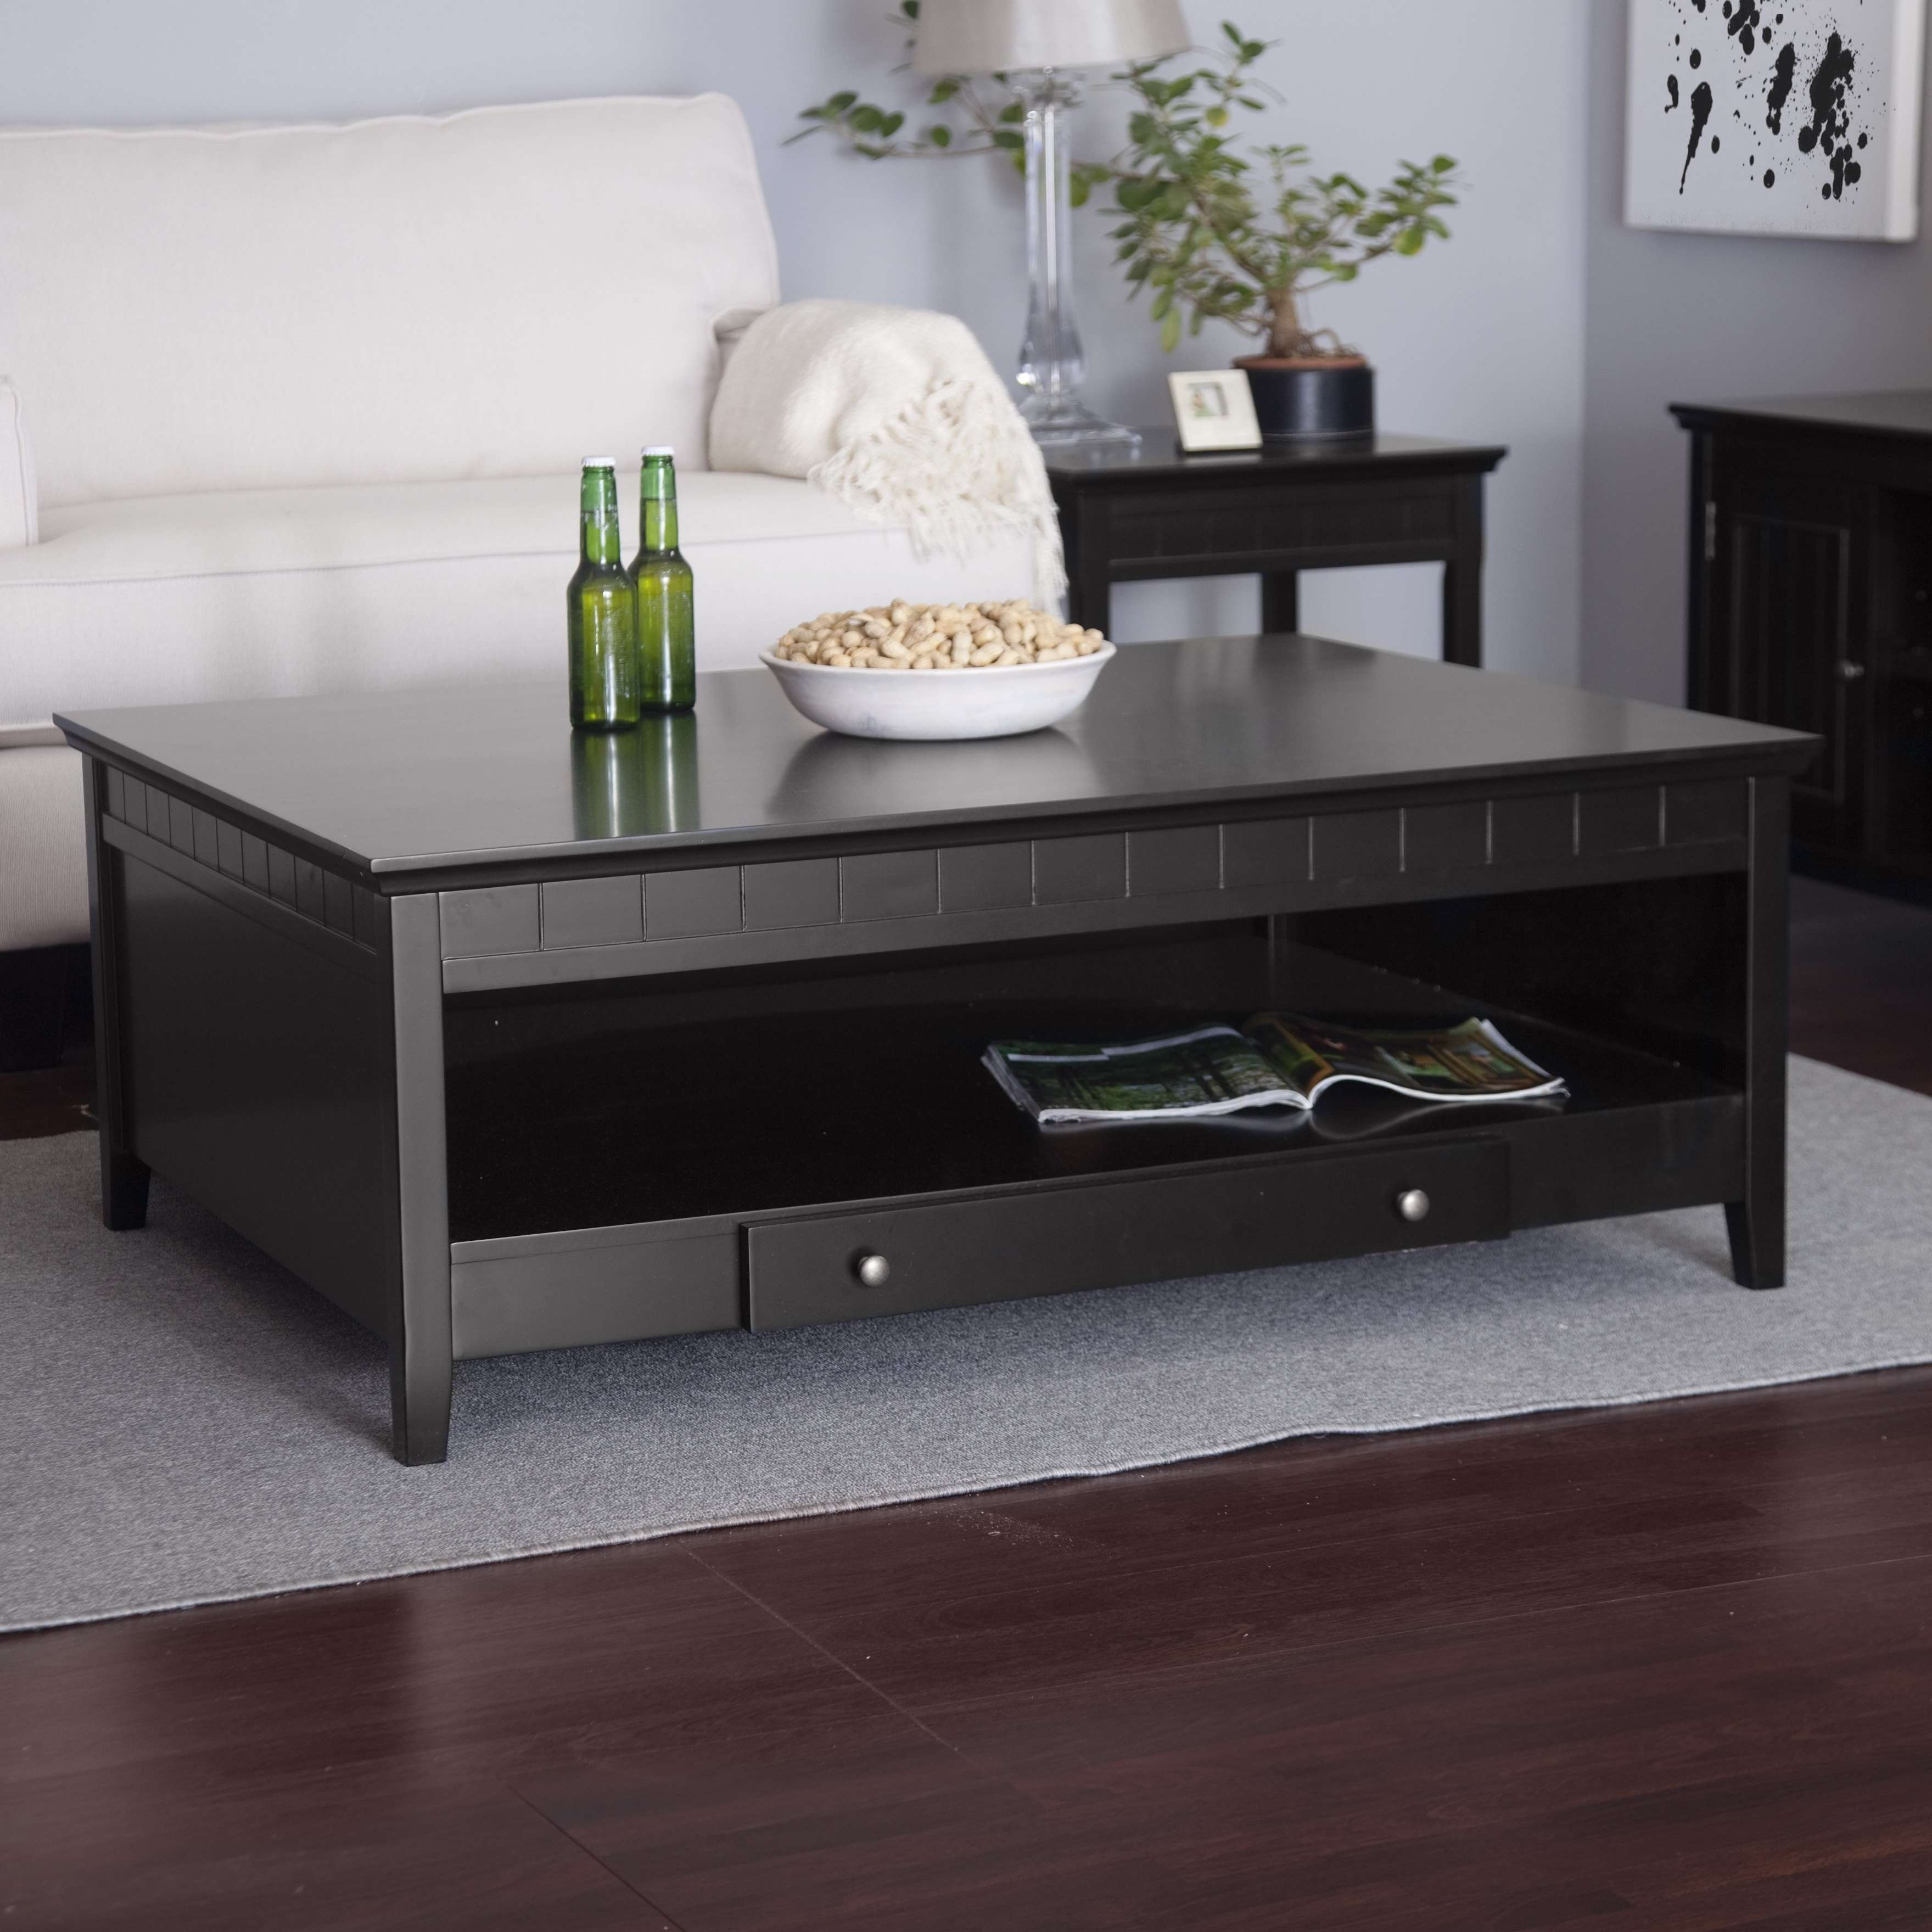 Large Black Coffee Table Regarding Best And Newest Square Black Coffee Tables (View 13 of 20)